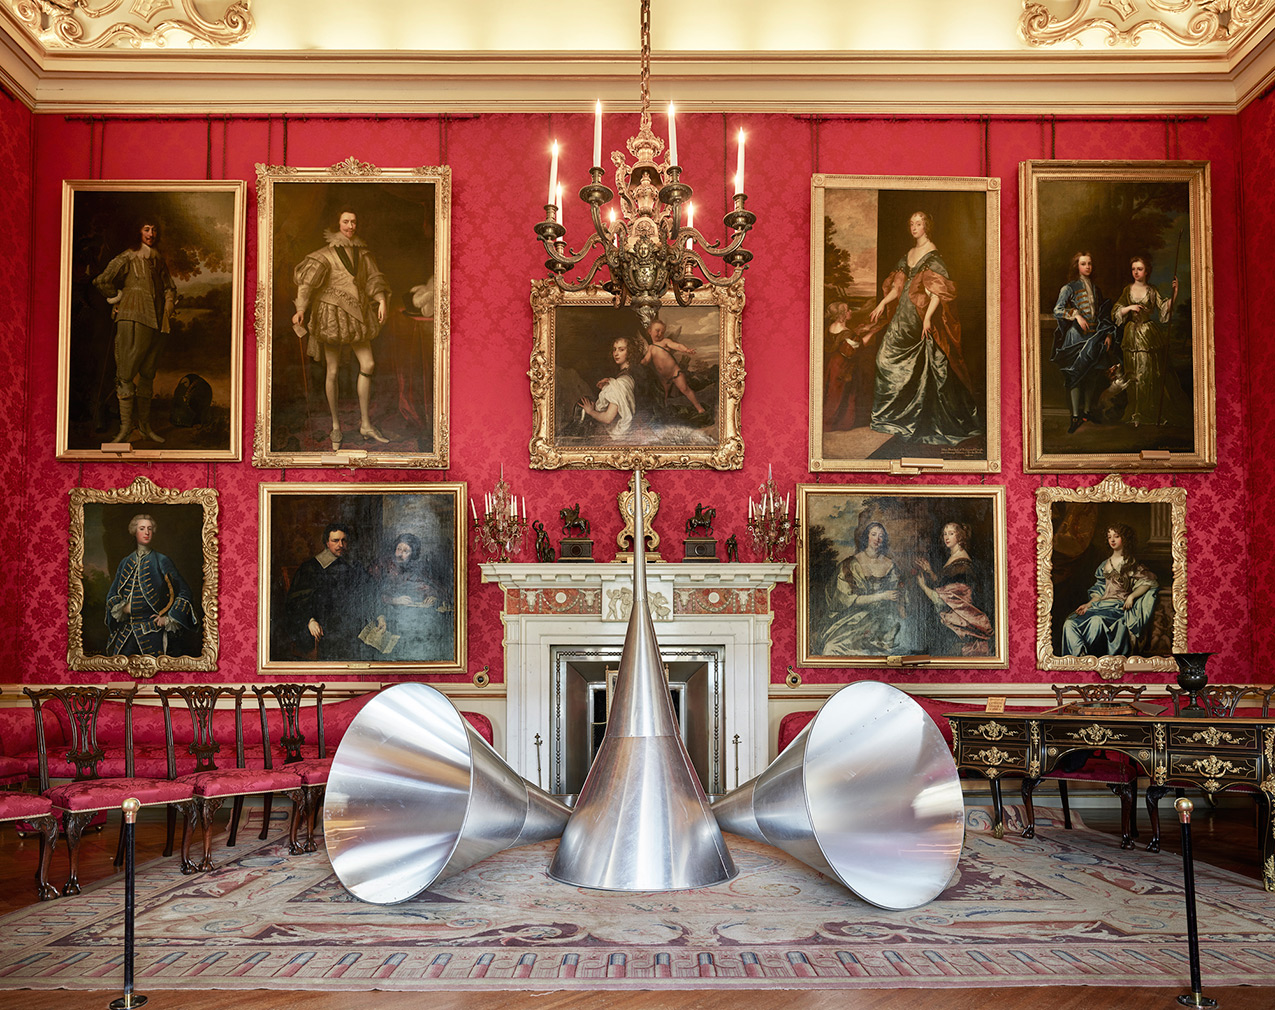 'The Trumpets of judgement' (1968-1986) by Michelangelo Pistoletto. Photography: Tom Lindboe / courtesy:Blenheim Art Foundation